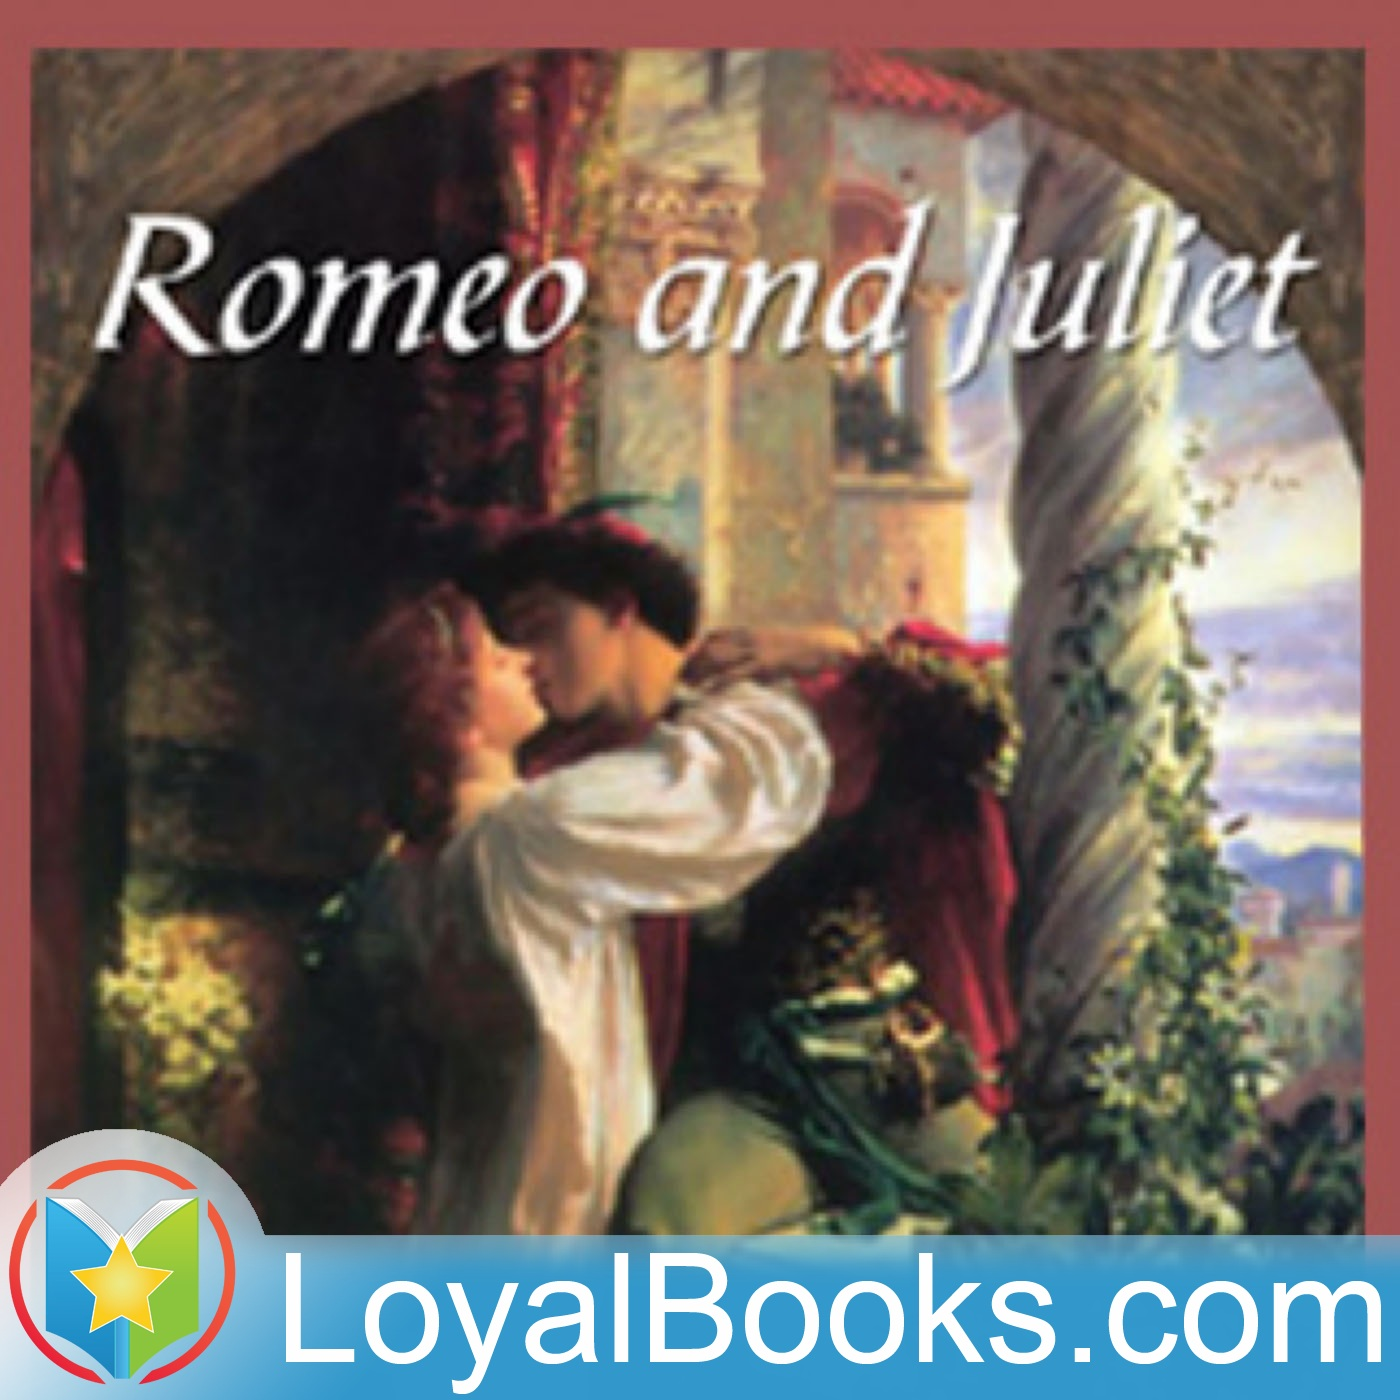 an introduction to romeo and juliet essay 1 romeo and juliet essay introduction romeo and juliet summaries - 1139 words act 1, scene 1 ­ montagues and capulets fight in the street, which is ended.